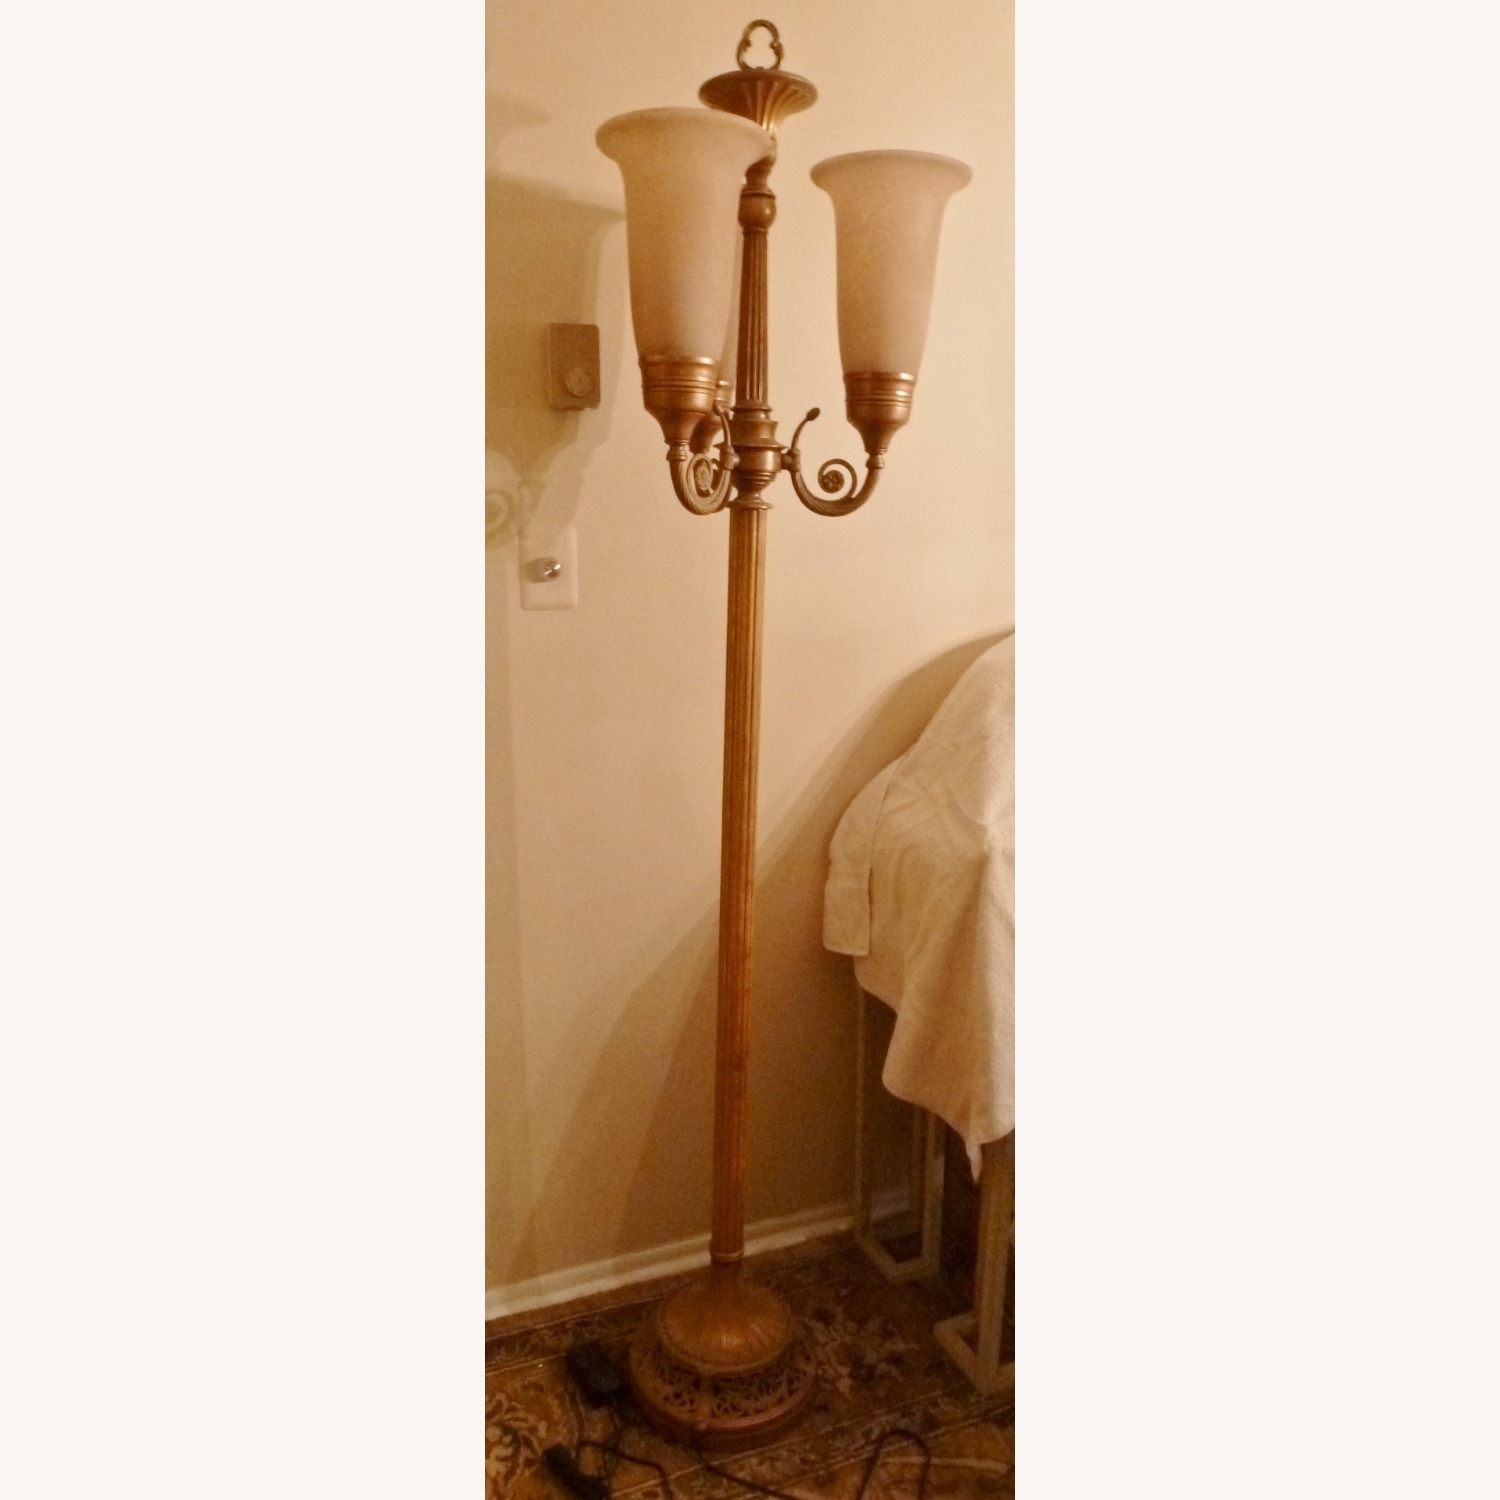 Gold tone Floor Lamp w/3 Lights and Dimmer Switch - image-4